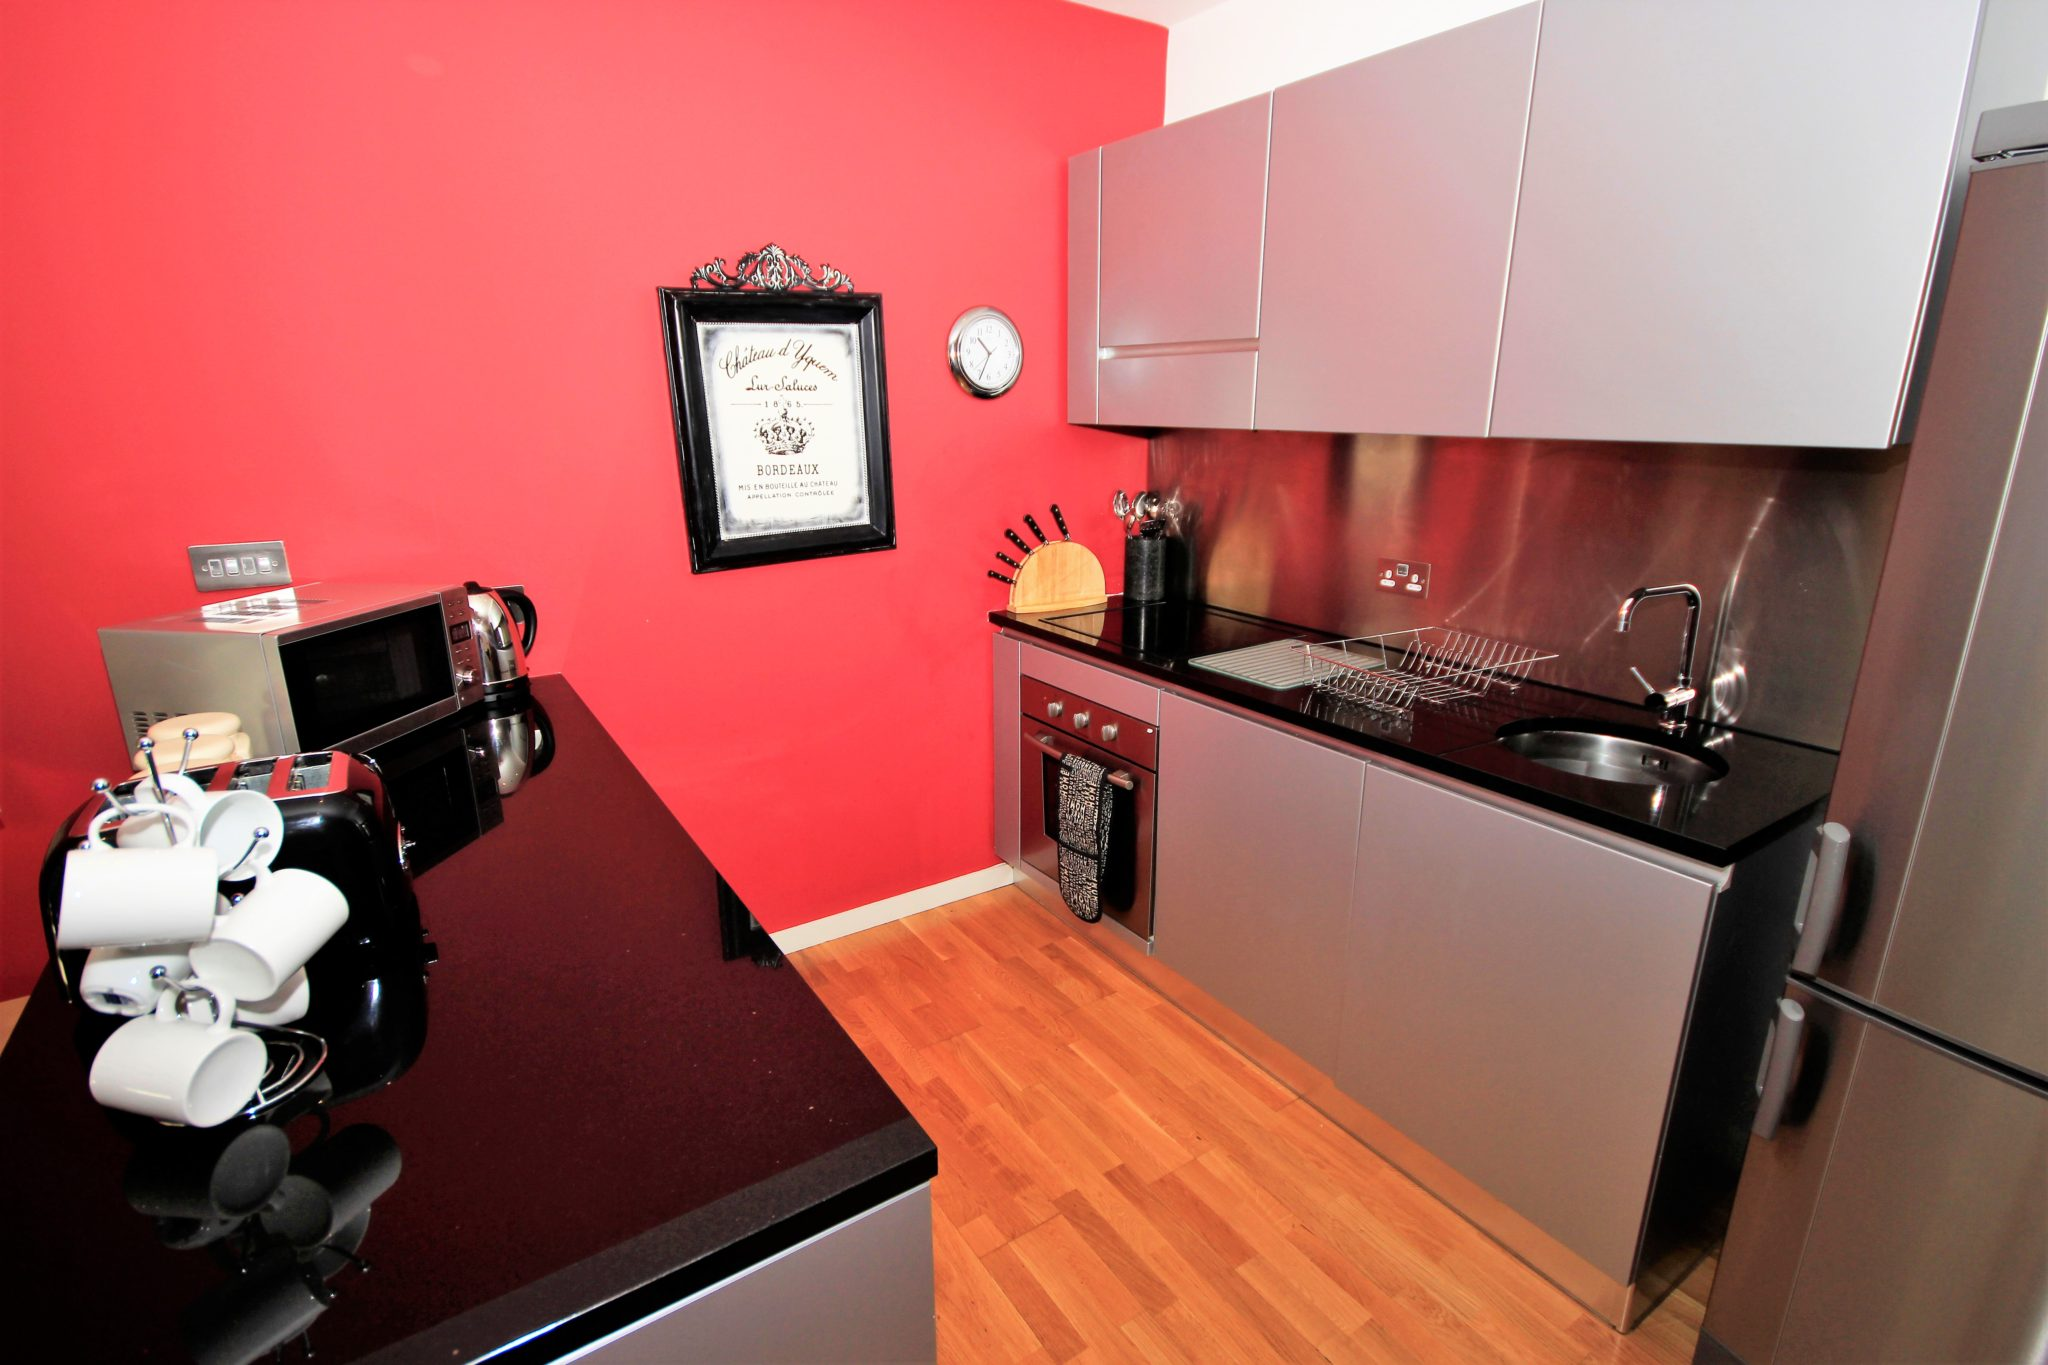 Luxury-Apartments-Newcastle-UK-available-Now-for-Short-Lets!-Book-Fully-Furnished-&-Serviced-Apartments-in-Central-Newcastle-for-cheaper-than-a-Hotel!-Urban-Stay